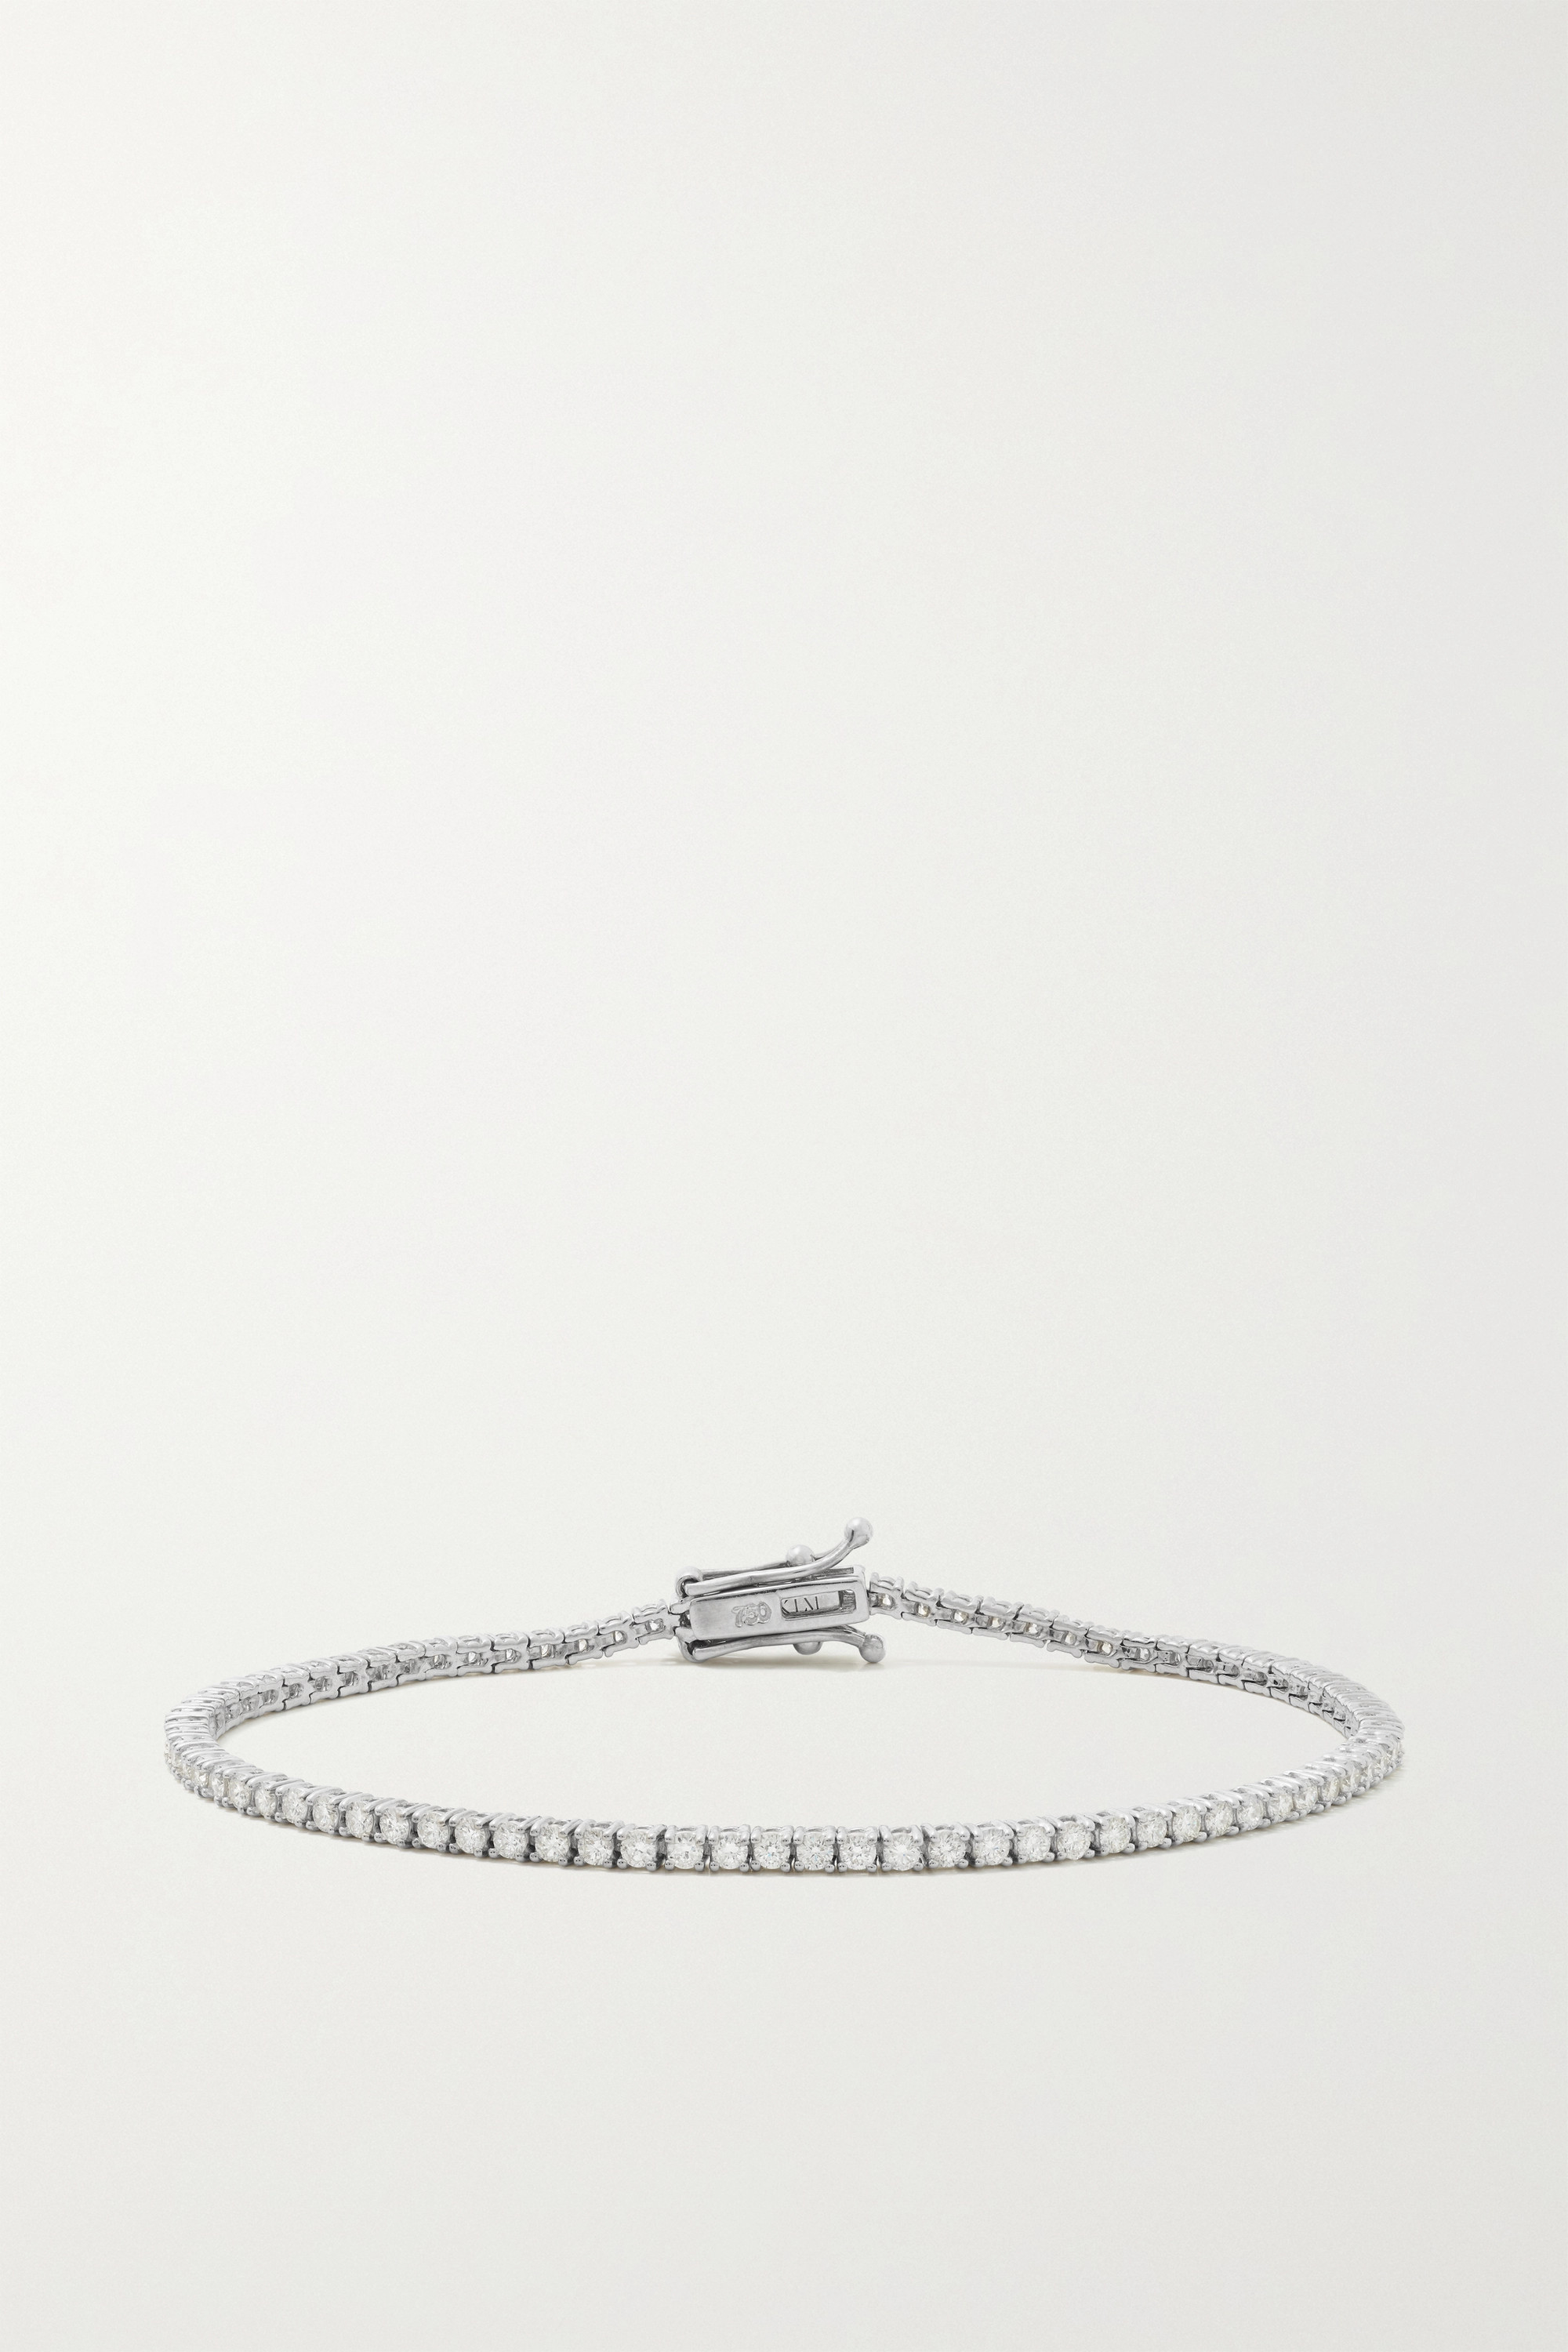 KATKIM White gold diamond bracelet